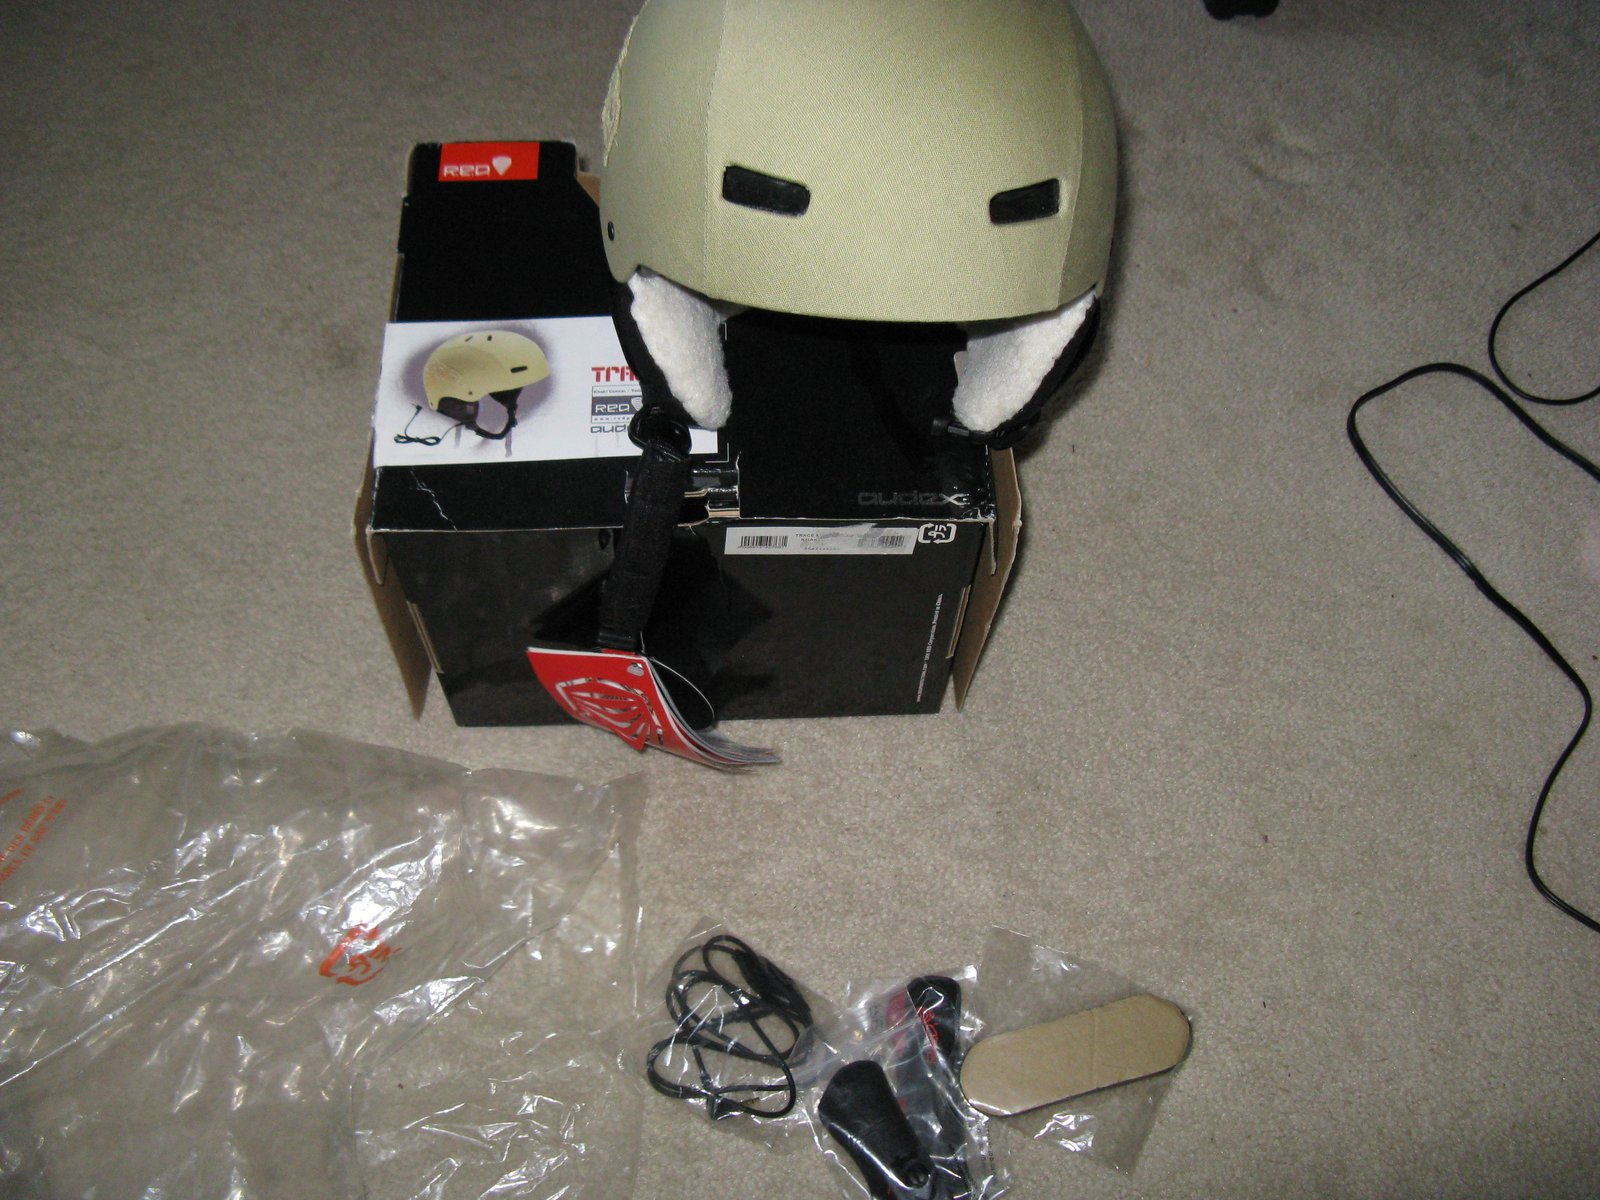 RED Trace helmet